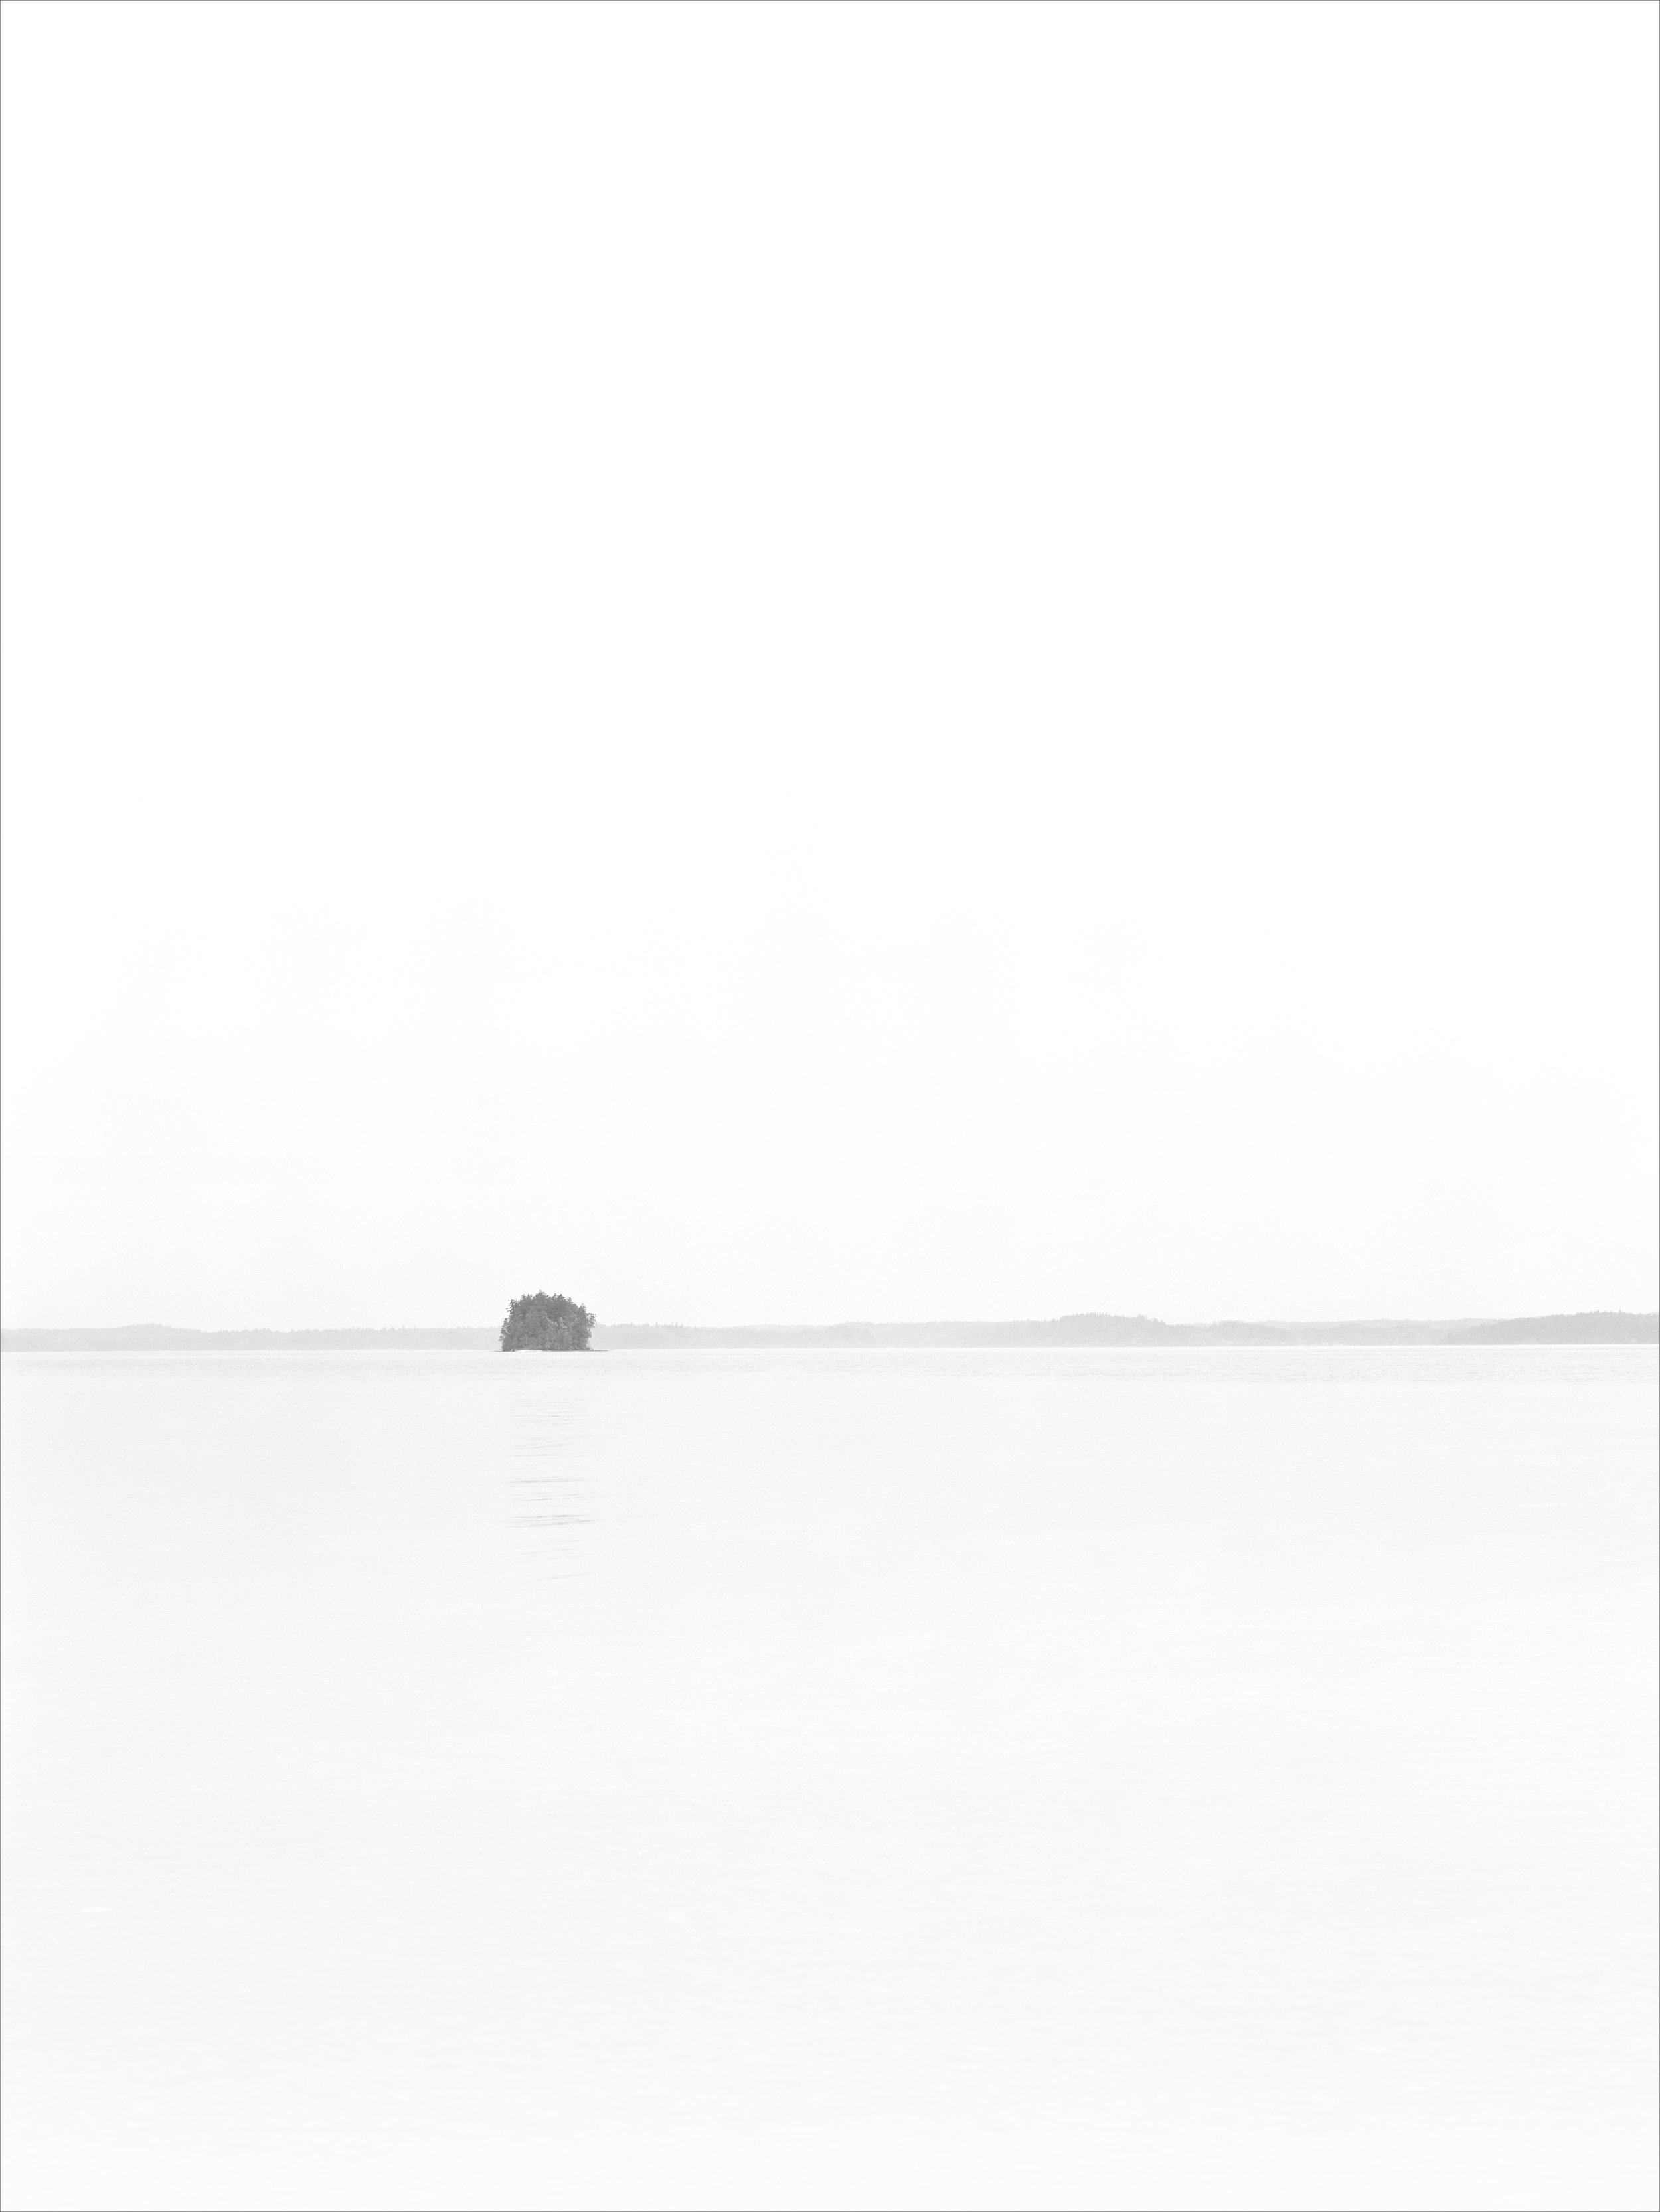 Untitled (  Ithaka 61A),  2008 /  a  rchival p  igment print  , 40  x 30  inches, edition of 5 plus 2 AP